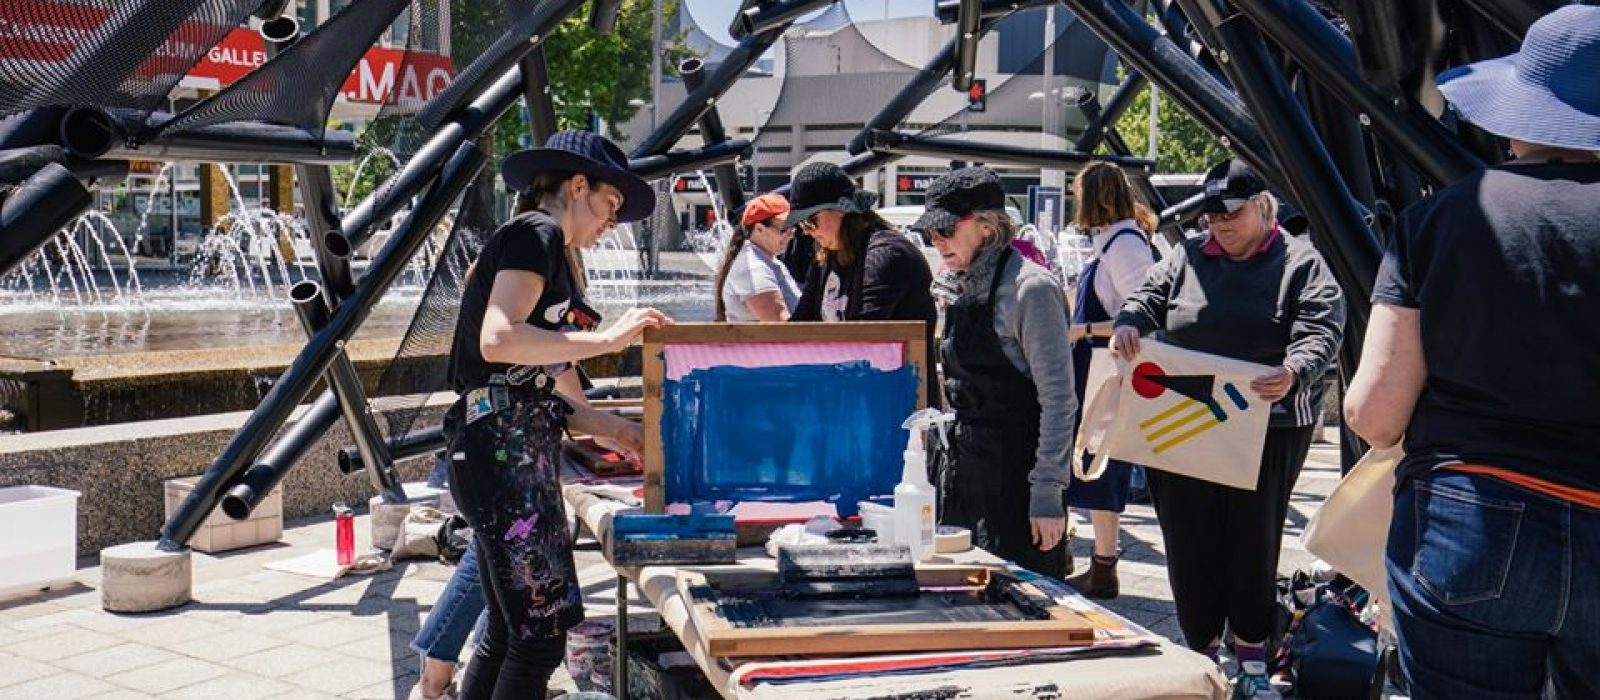 Megalo printmaking workshop in Civic Square 2019. Photo: 5 Foot Photography